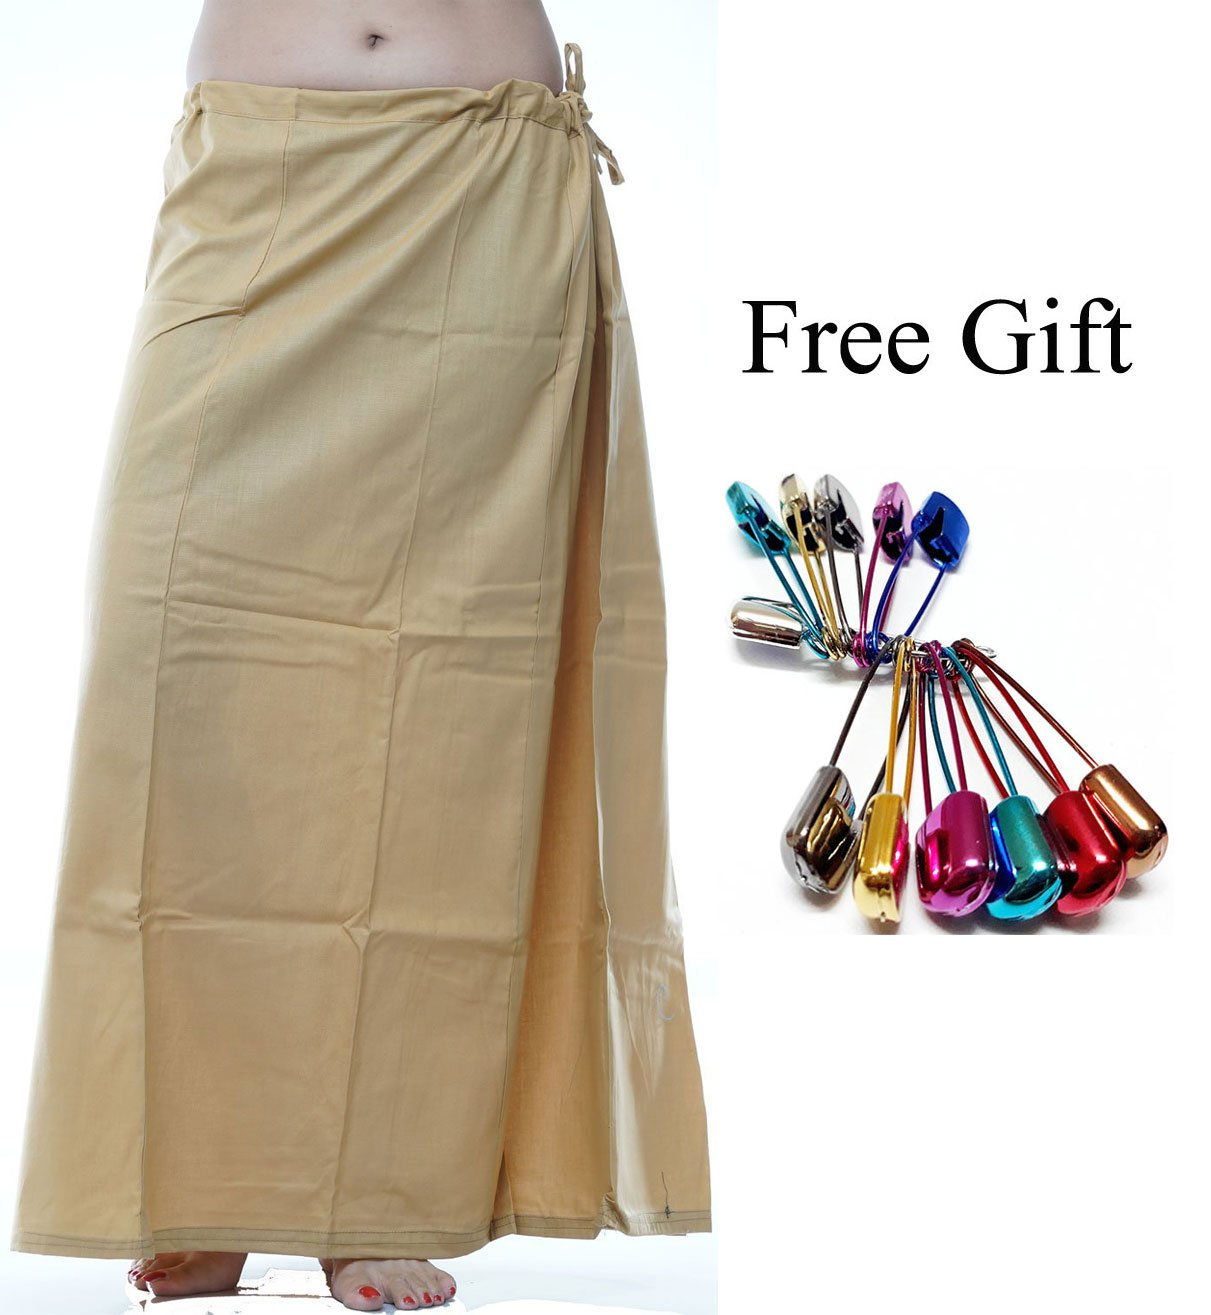 Odishabazaar Women Saree Petticoat Cotton Underskirt Lining For Sari + Free Sari Pin (Gold)